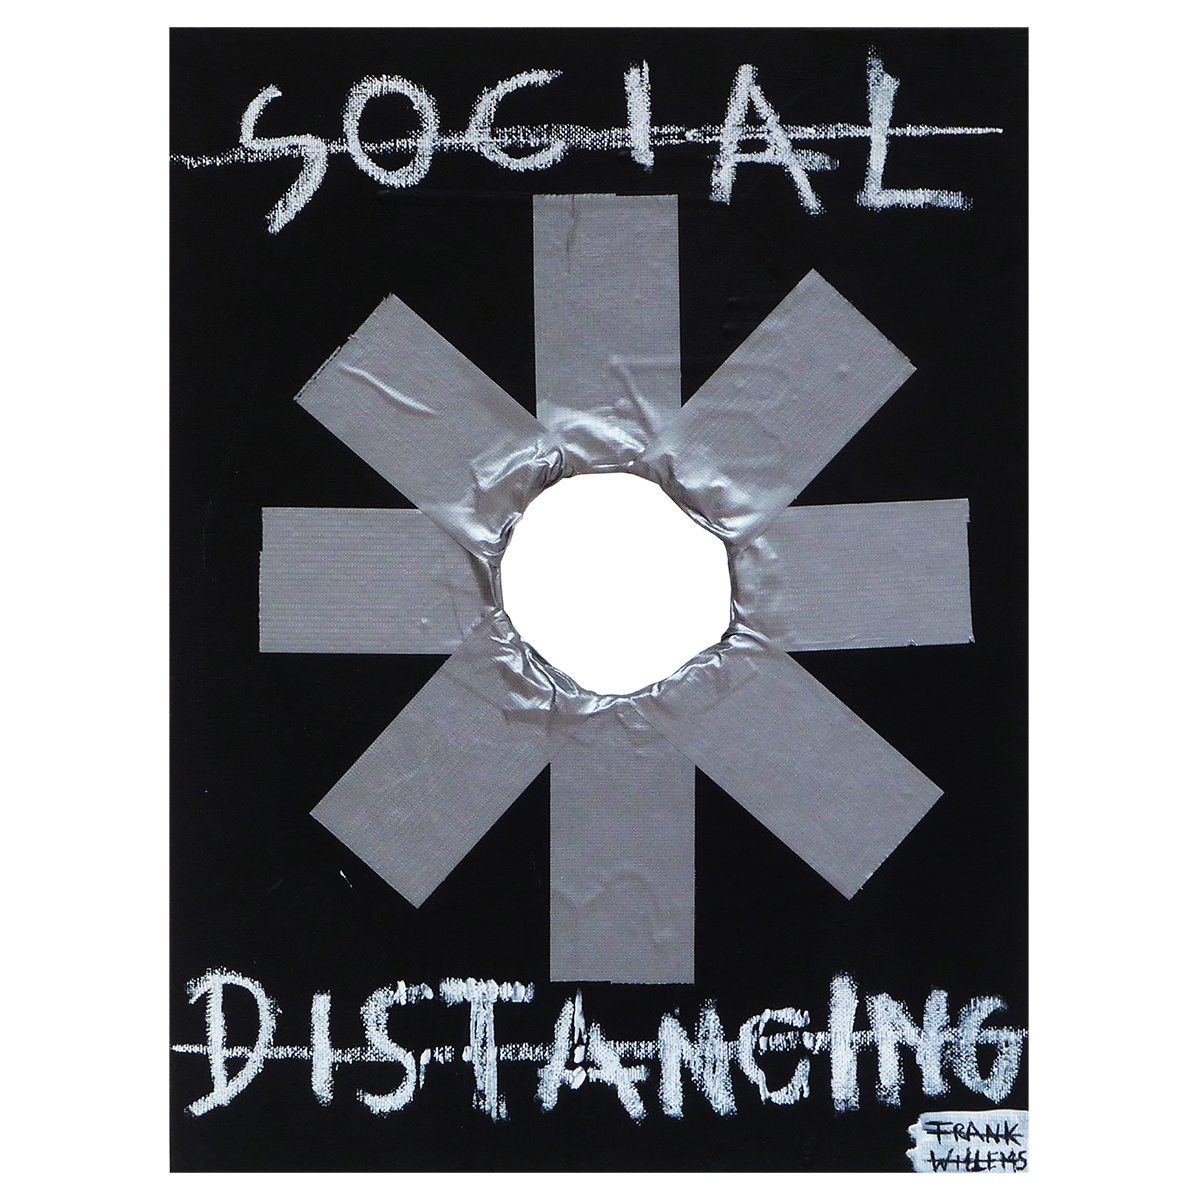 SOCIAL DISTANCING - Frank Willems